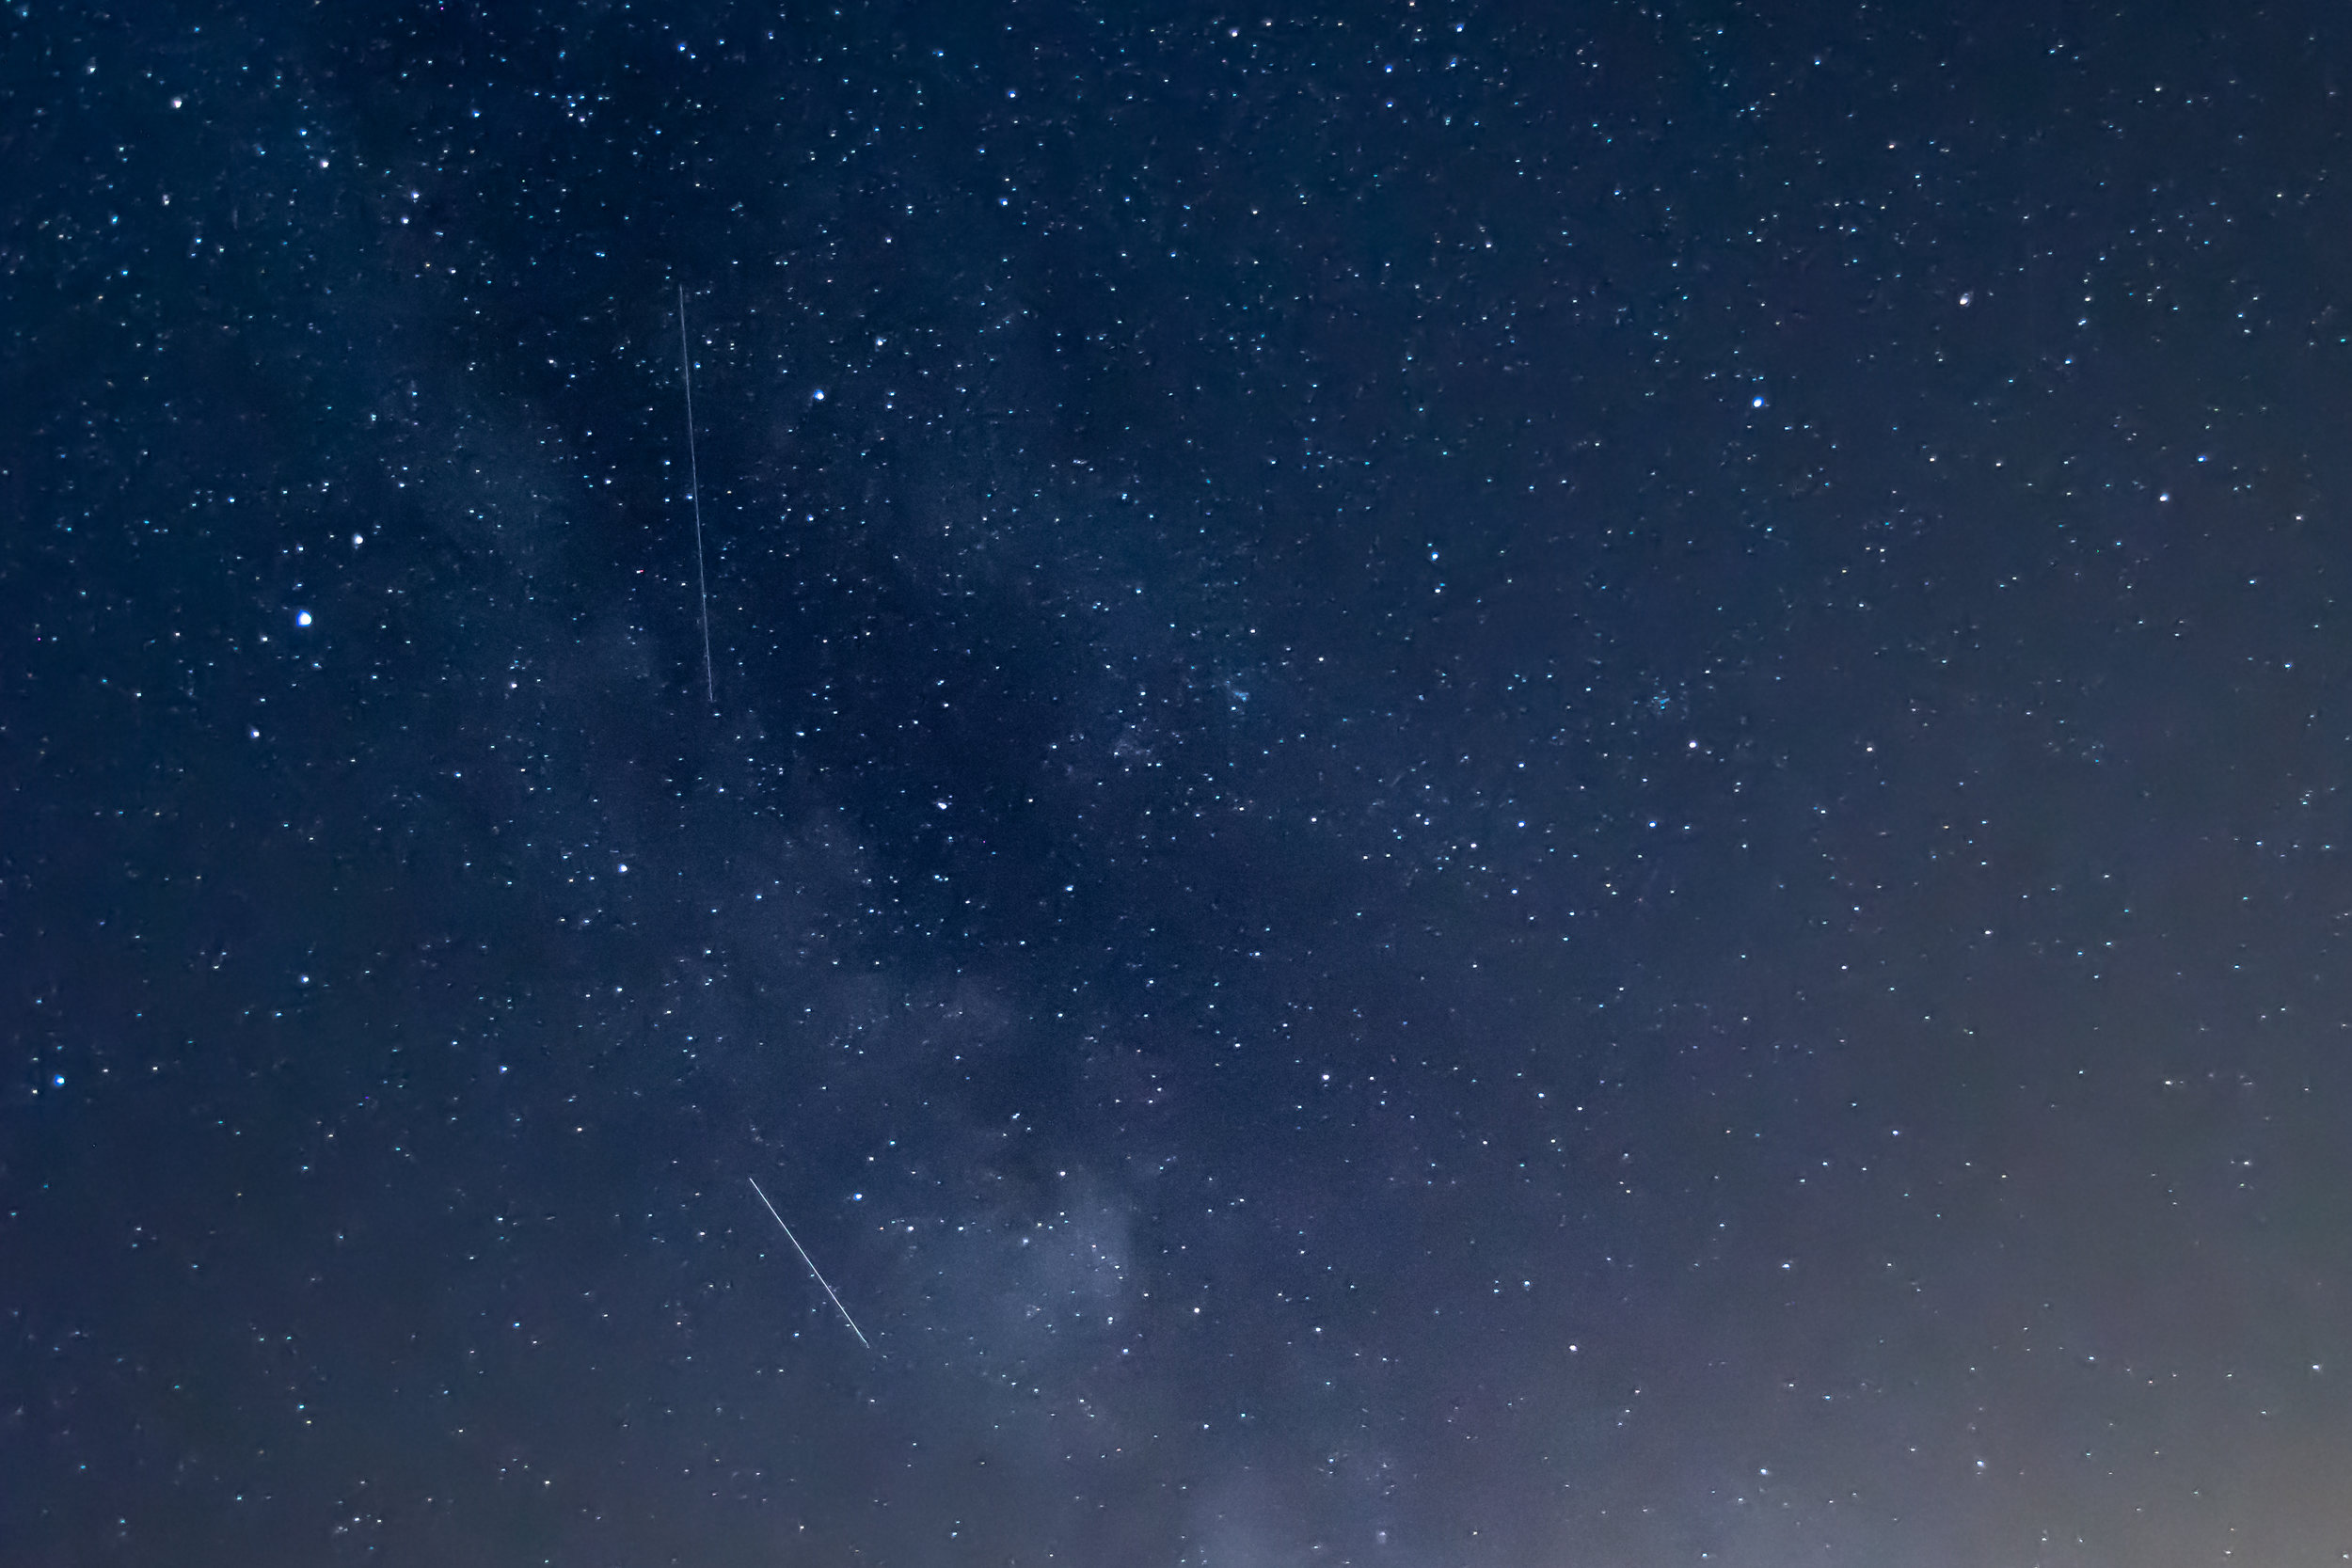 After pointing the camera a little higher in the sky to avoid light pollution, I was lucky enough to capture two Perseid Meteors in front of the Milky Way!!!